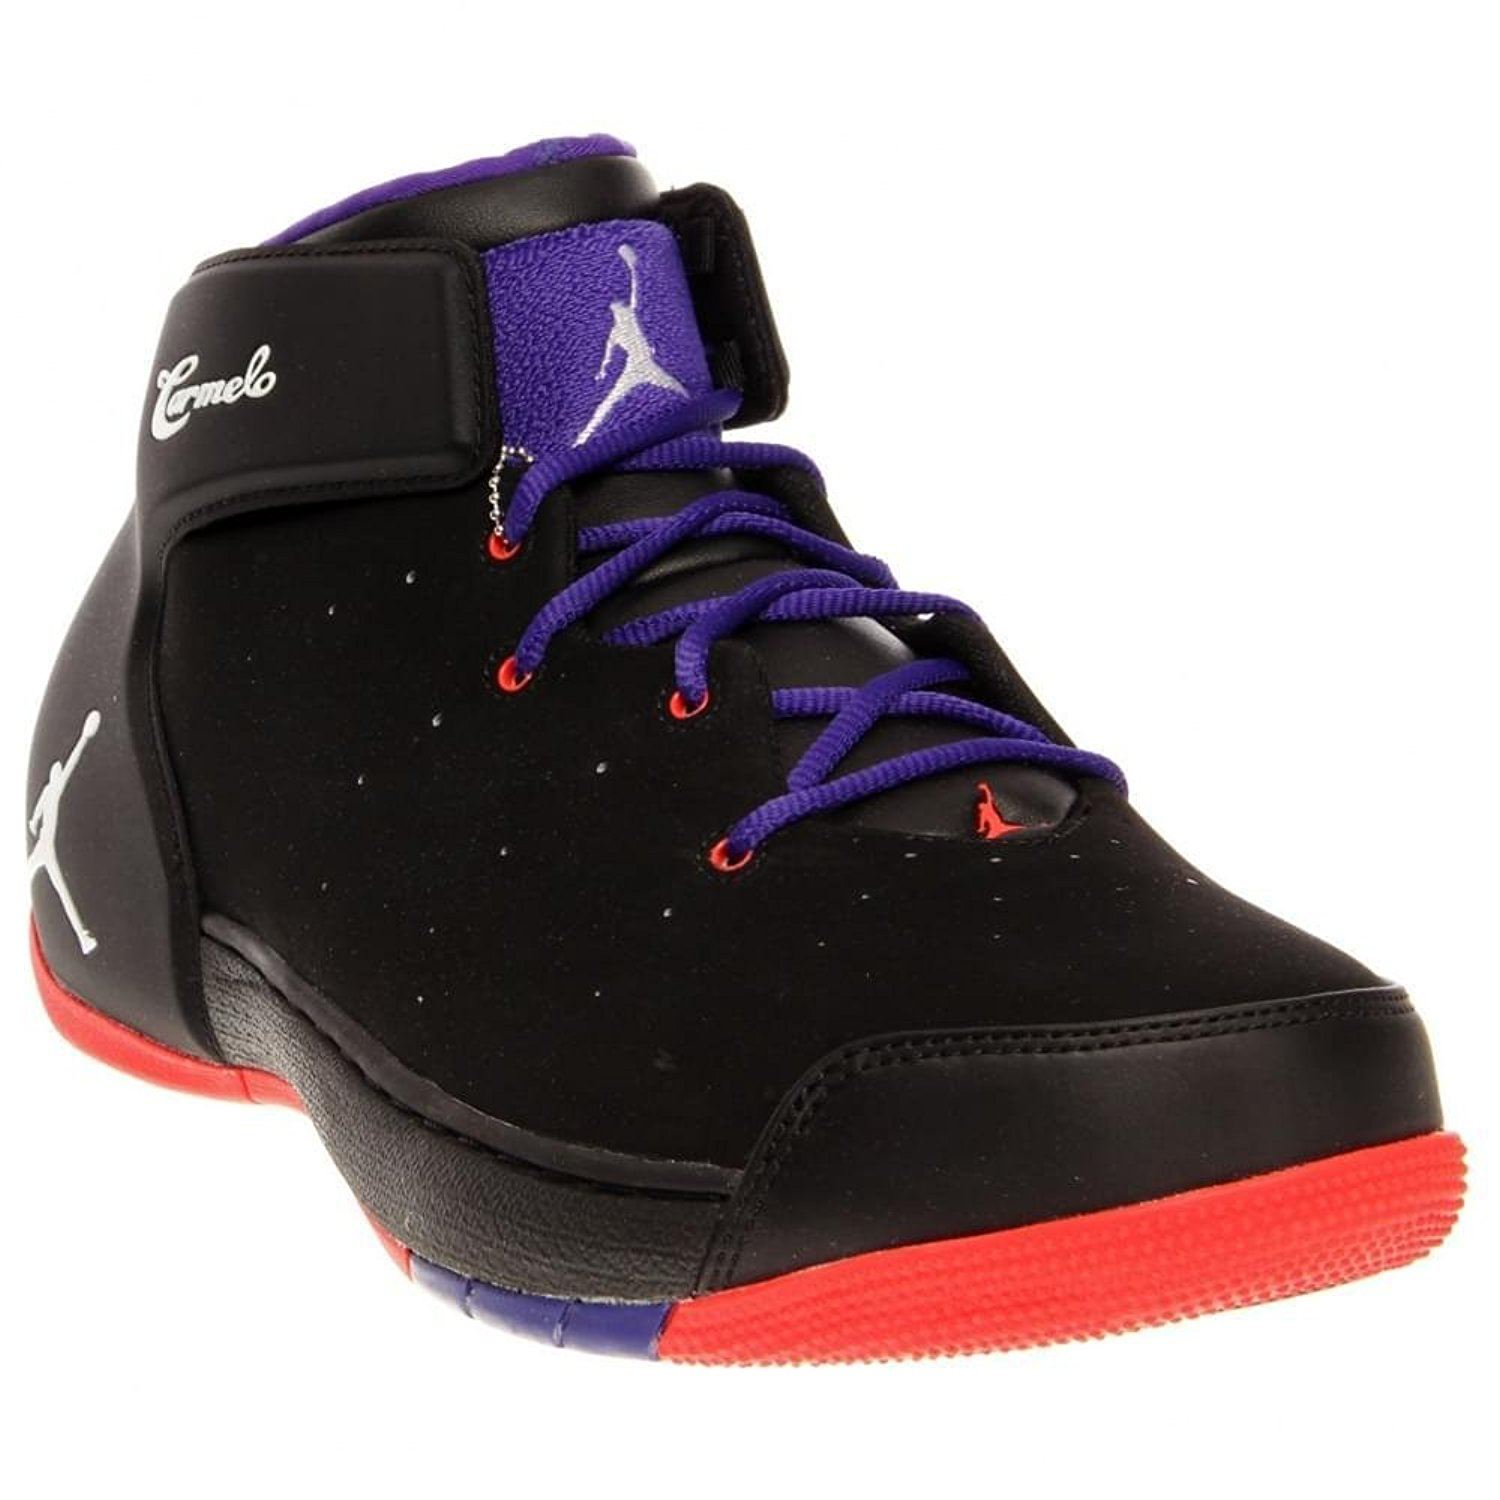 premium selection b010f d93fc ... reduced nike air jordan melo 1.5 mens basketball shoes e3765 d72cb